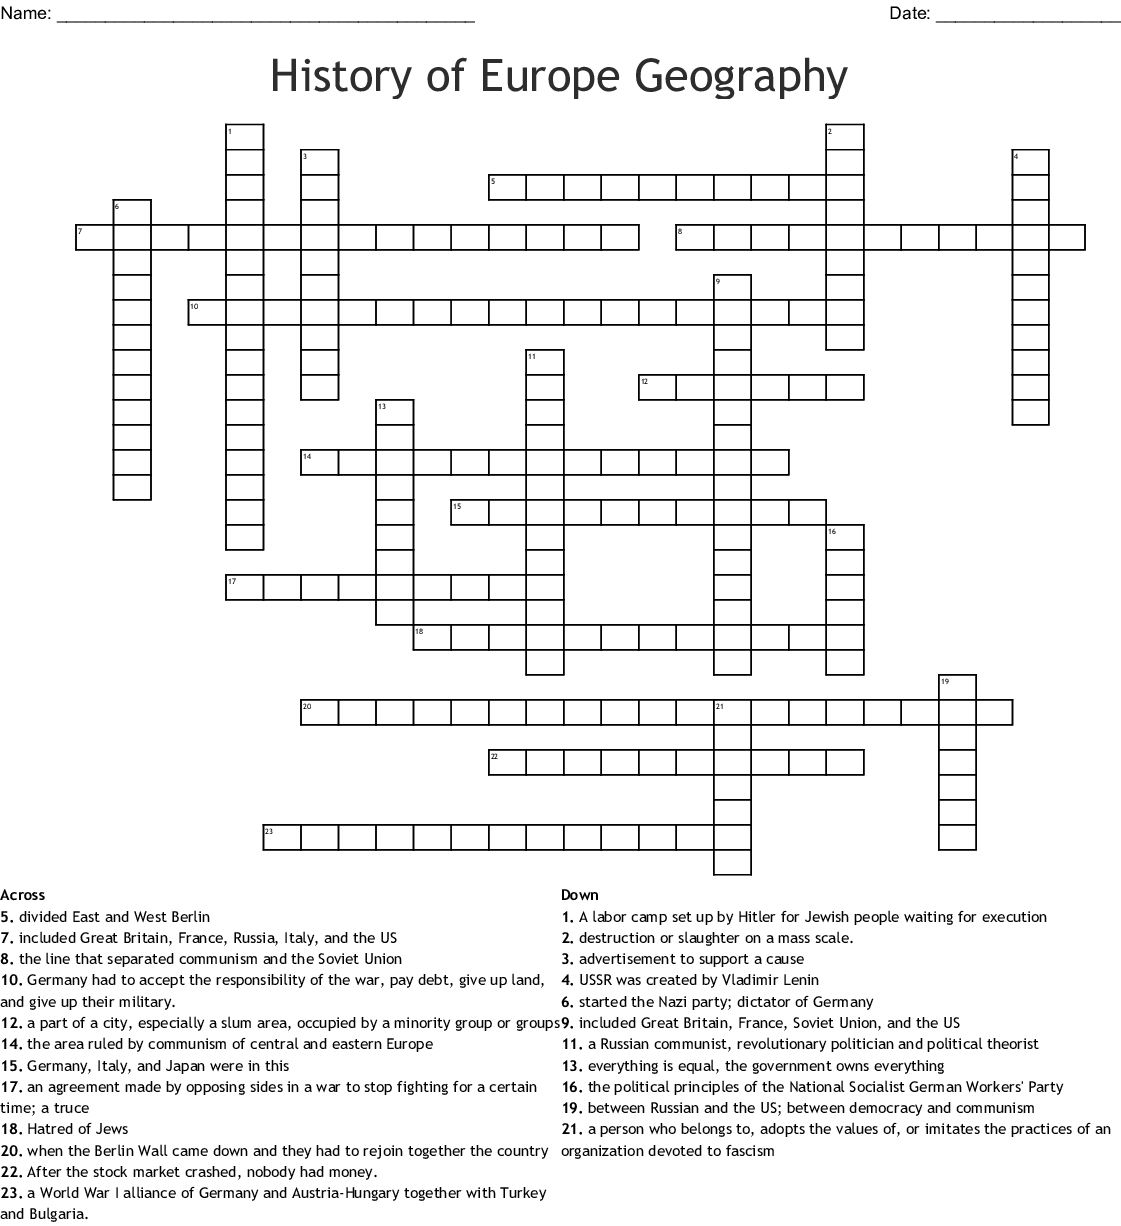 Europe Geography Crossword Puzzle Answer Key